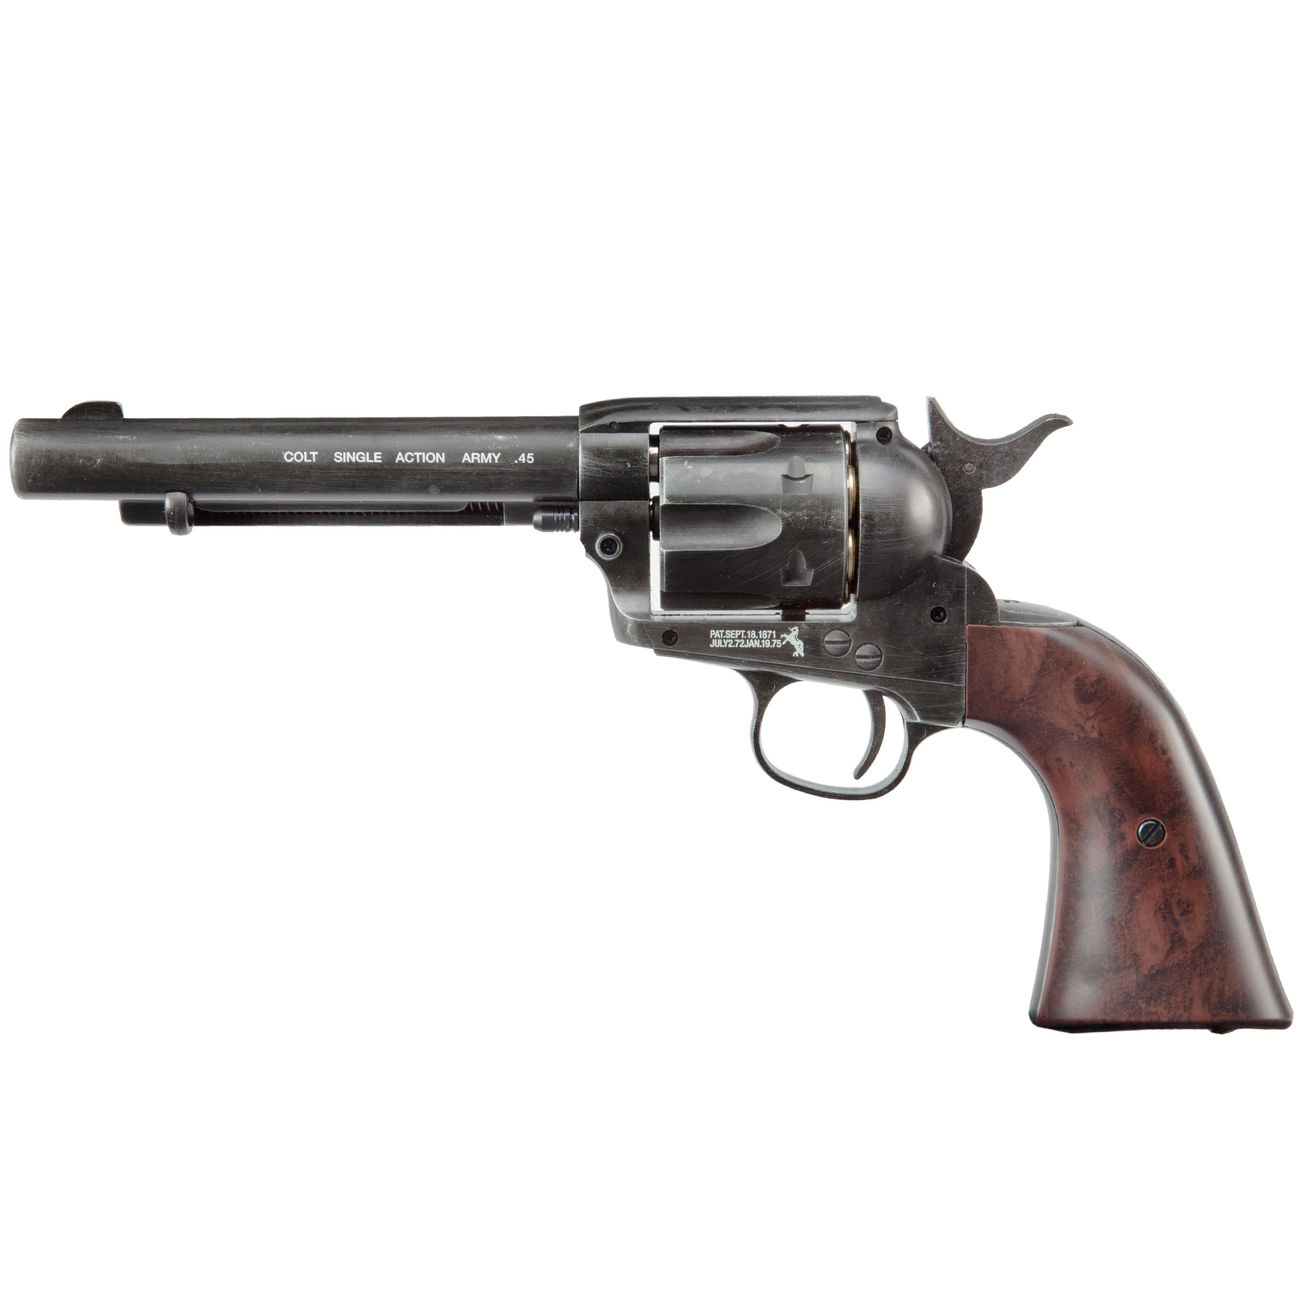 Colt Single Action Army 45 antik CO2 Revolver 4,5mm BB 0